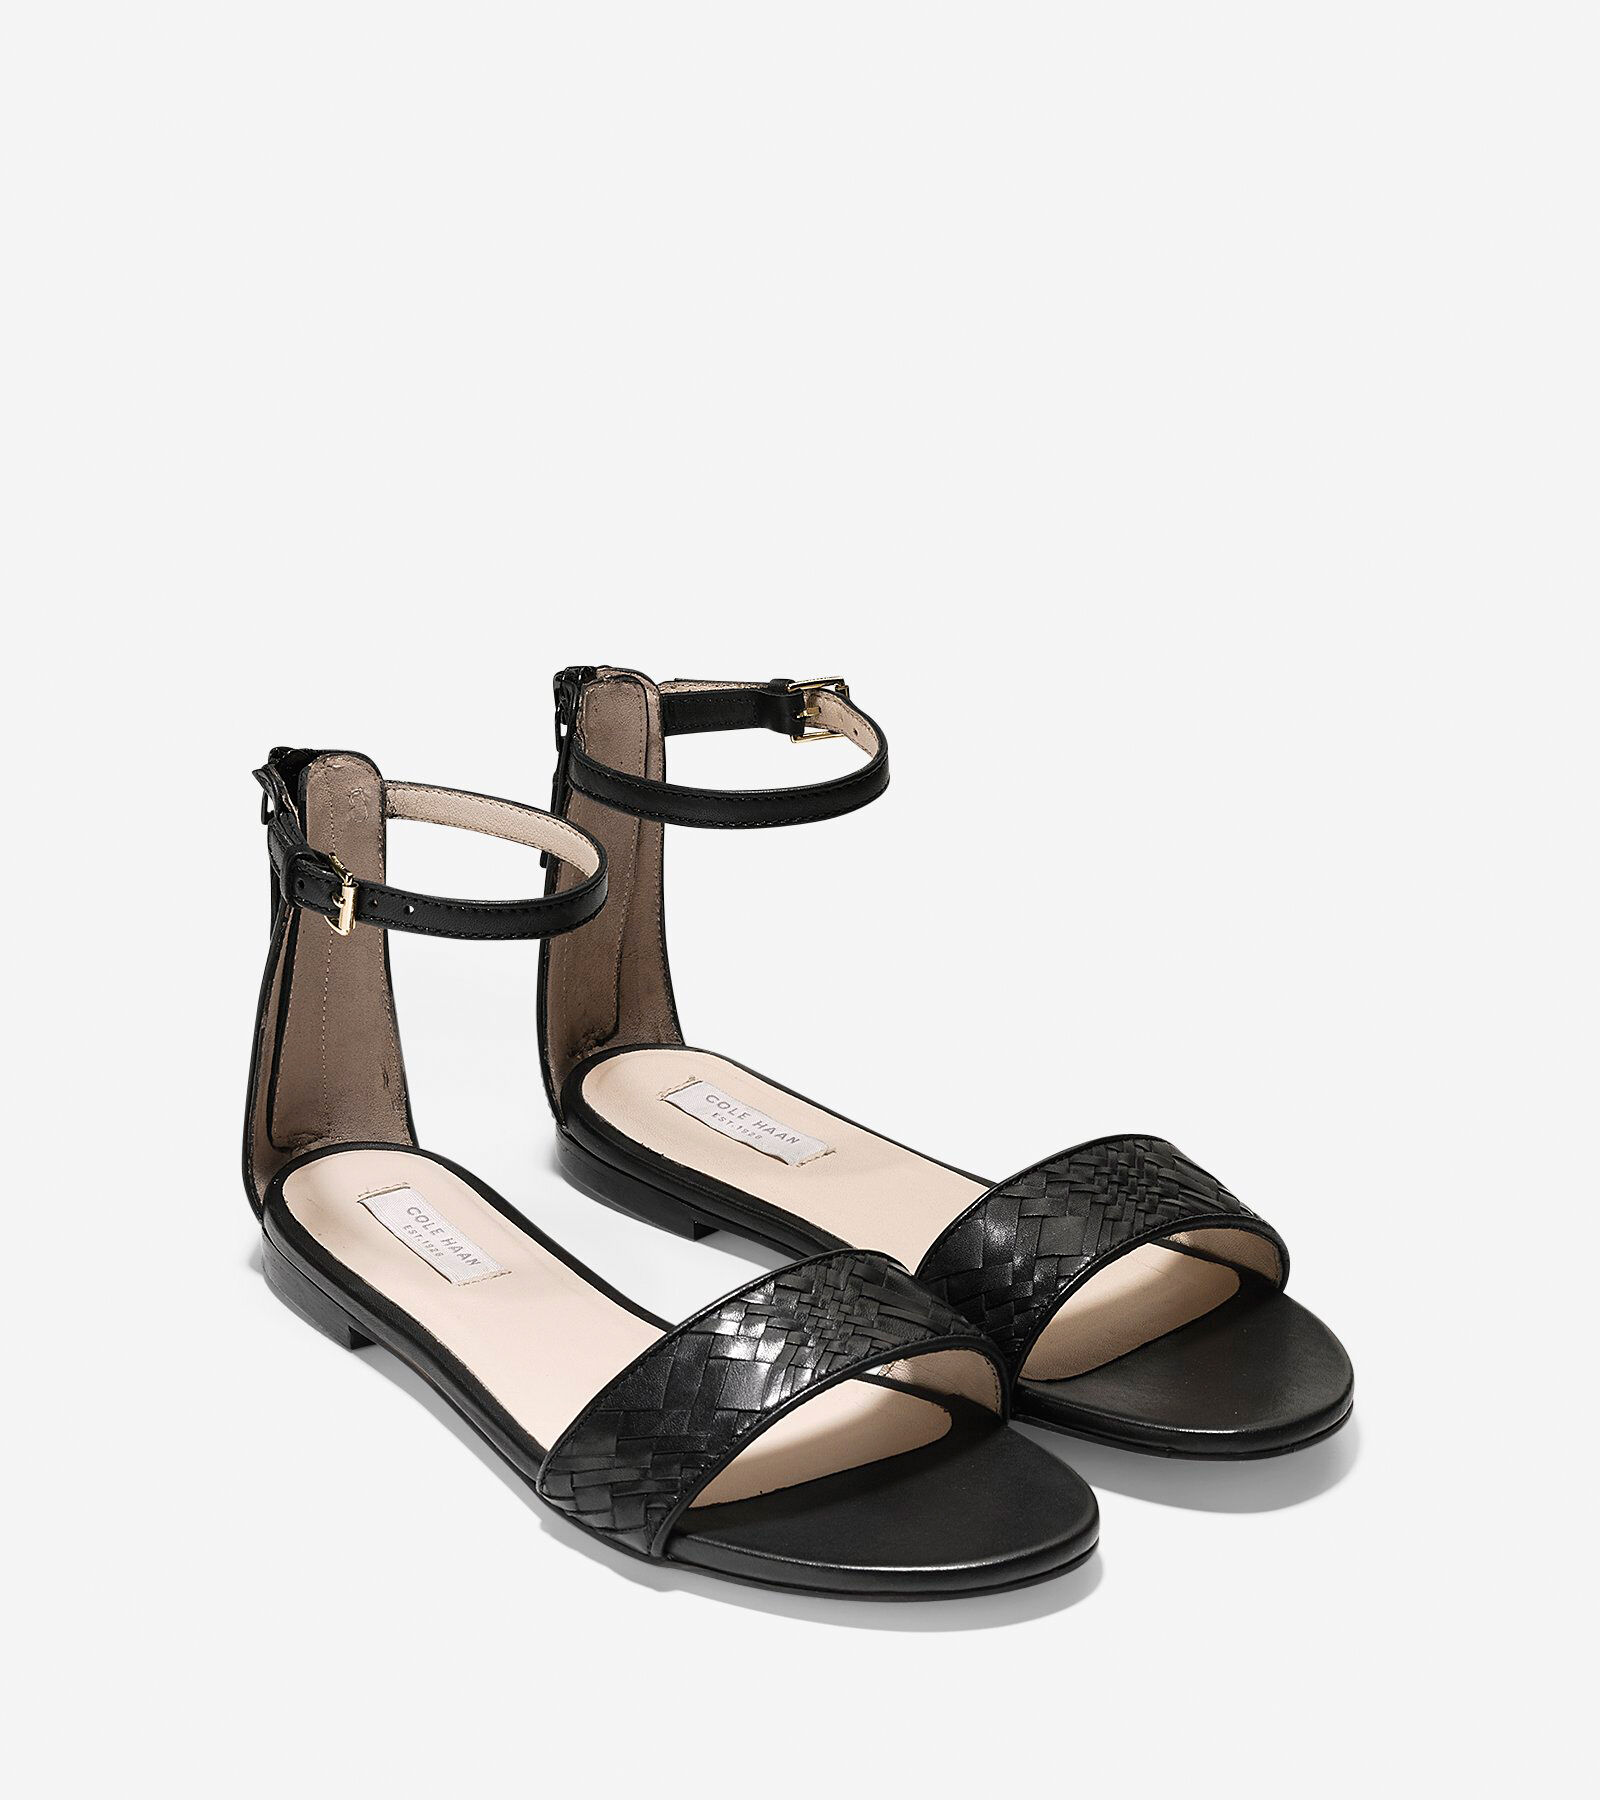 clearance buy cheap pay with visa Cole Haan Woven Leather Thong Sandals buy cheap top quality outlet store online free shipping new RdvBrMtc